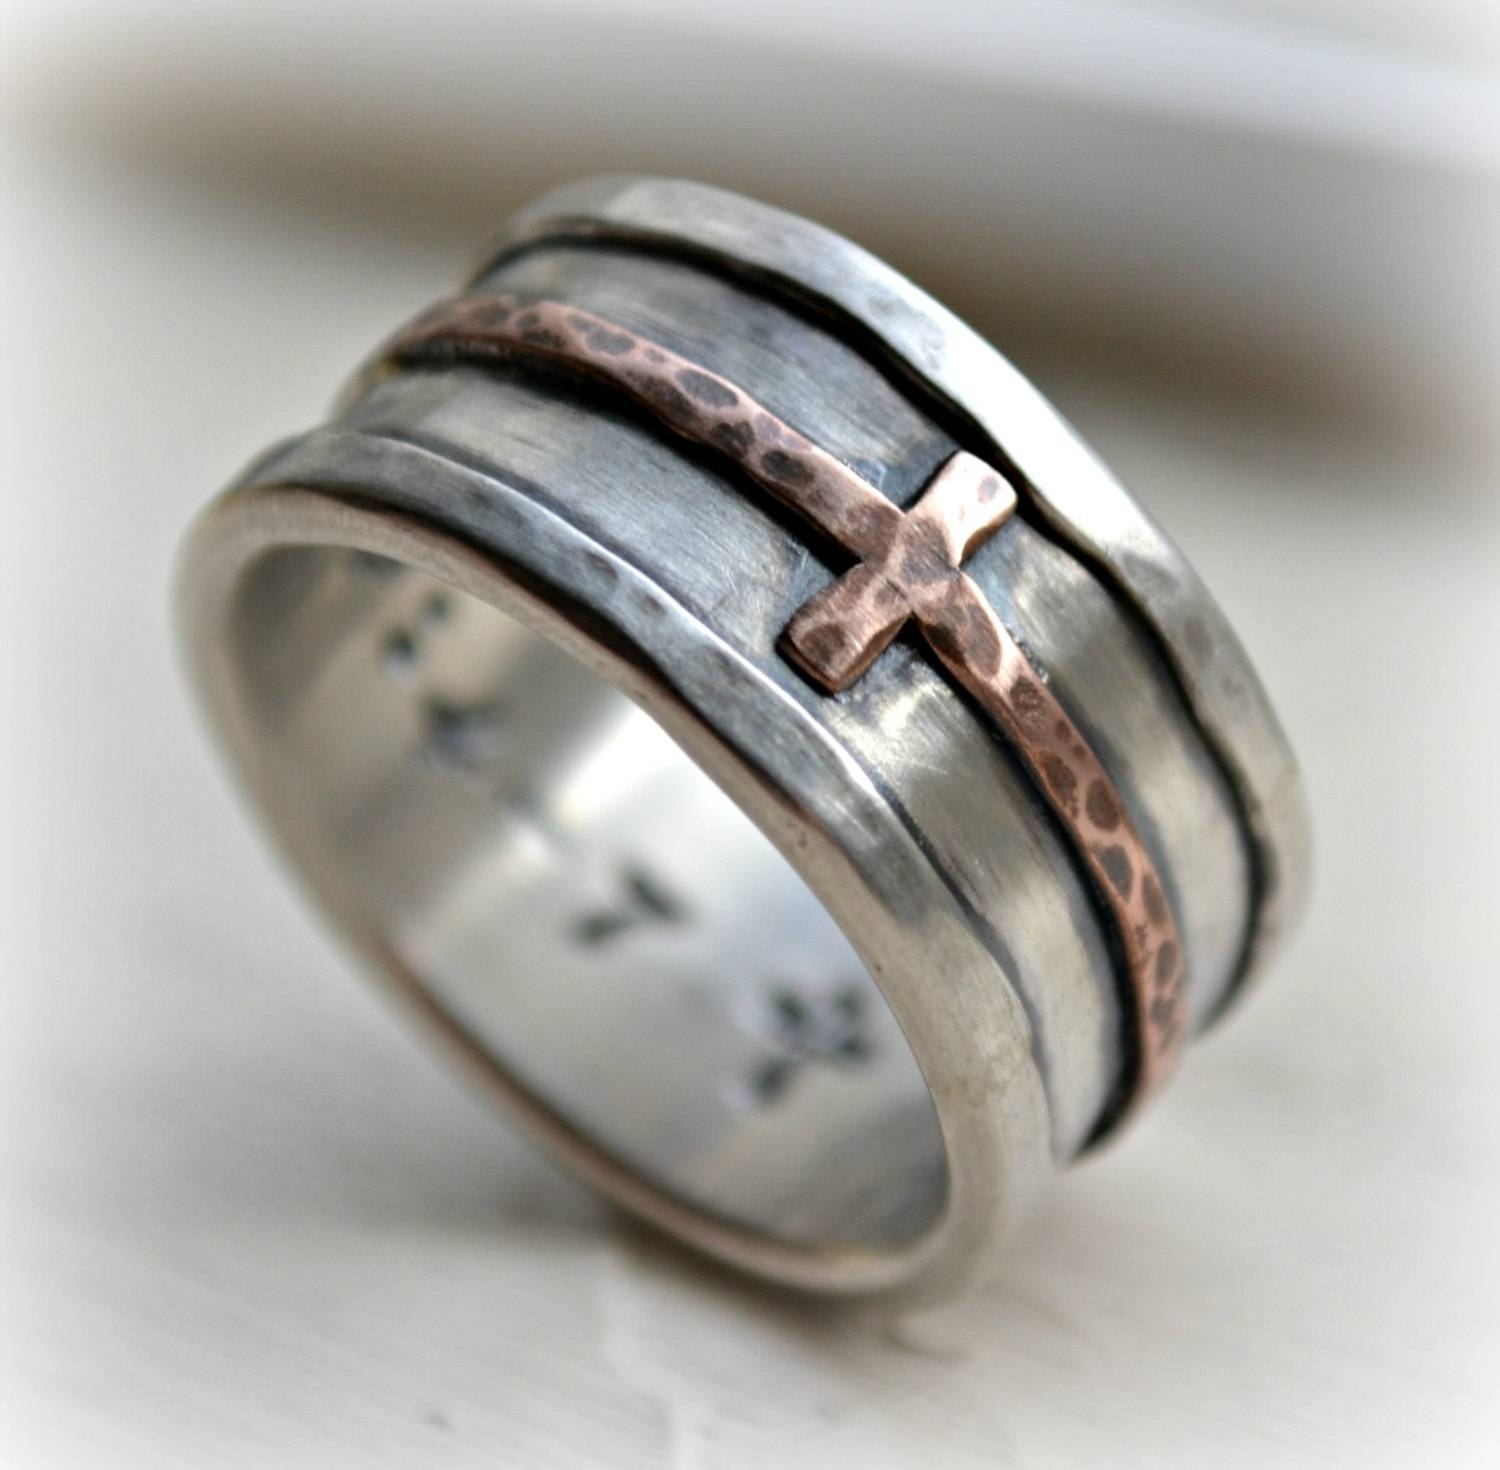 Mens Cross Wedding Band Rustic Hammered Cross Ring Oxidized With Regard To Mens Wedding Bands With Cross (View 6 of 15)